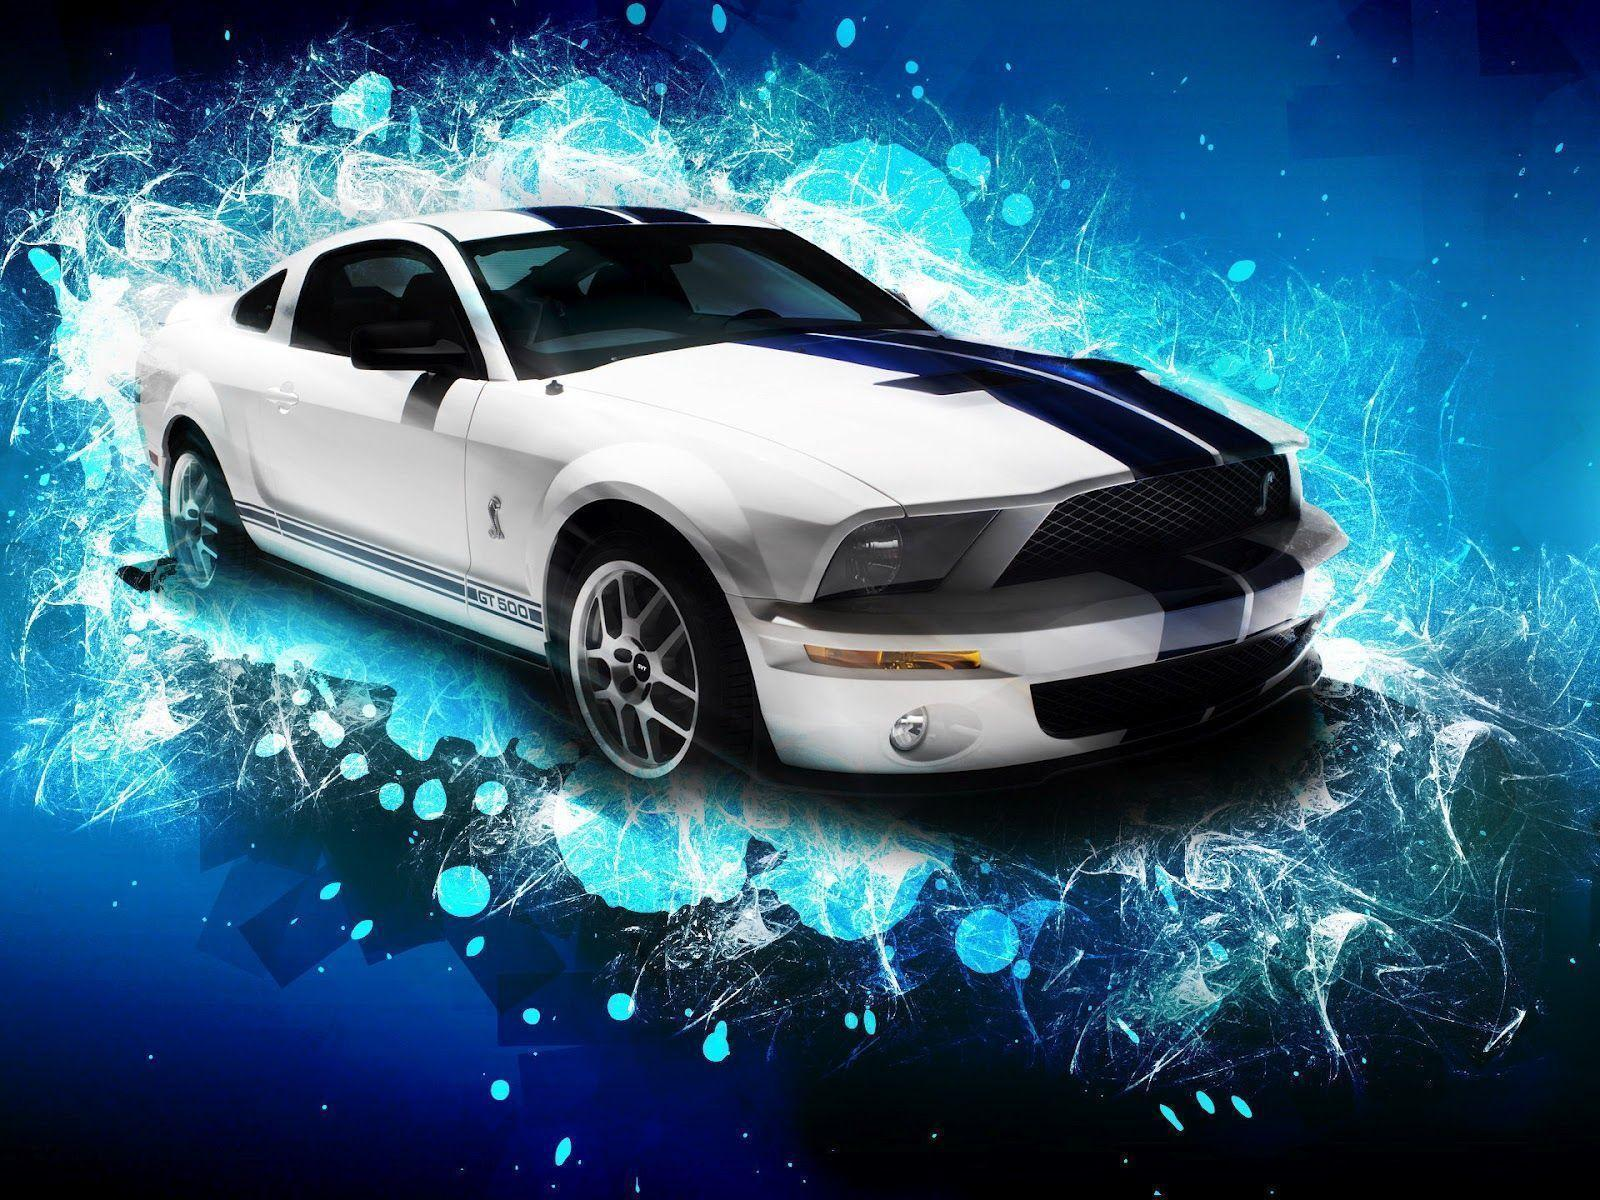 Car Wash Wallpapers